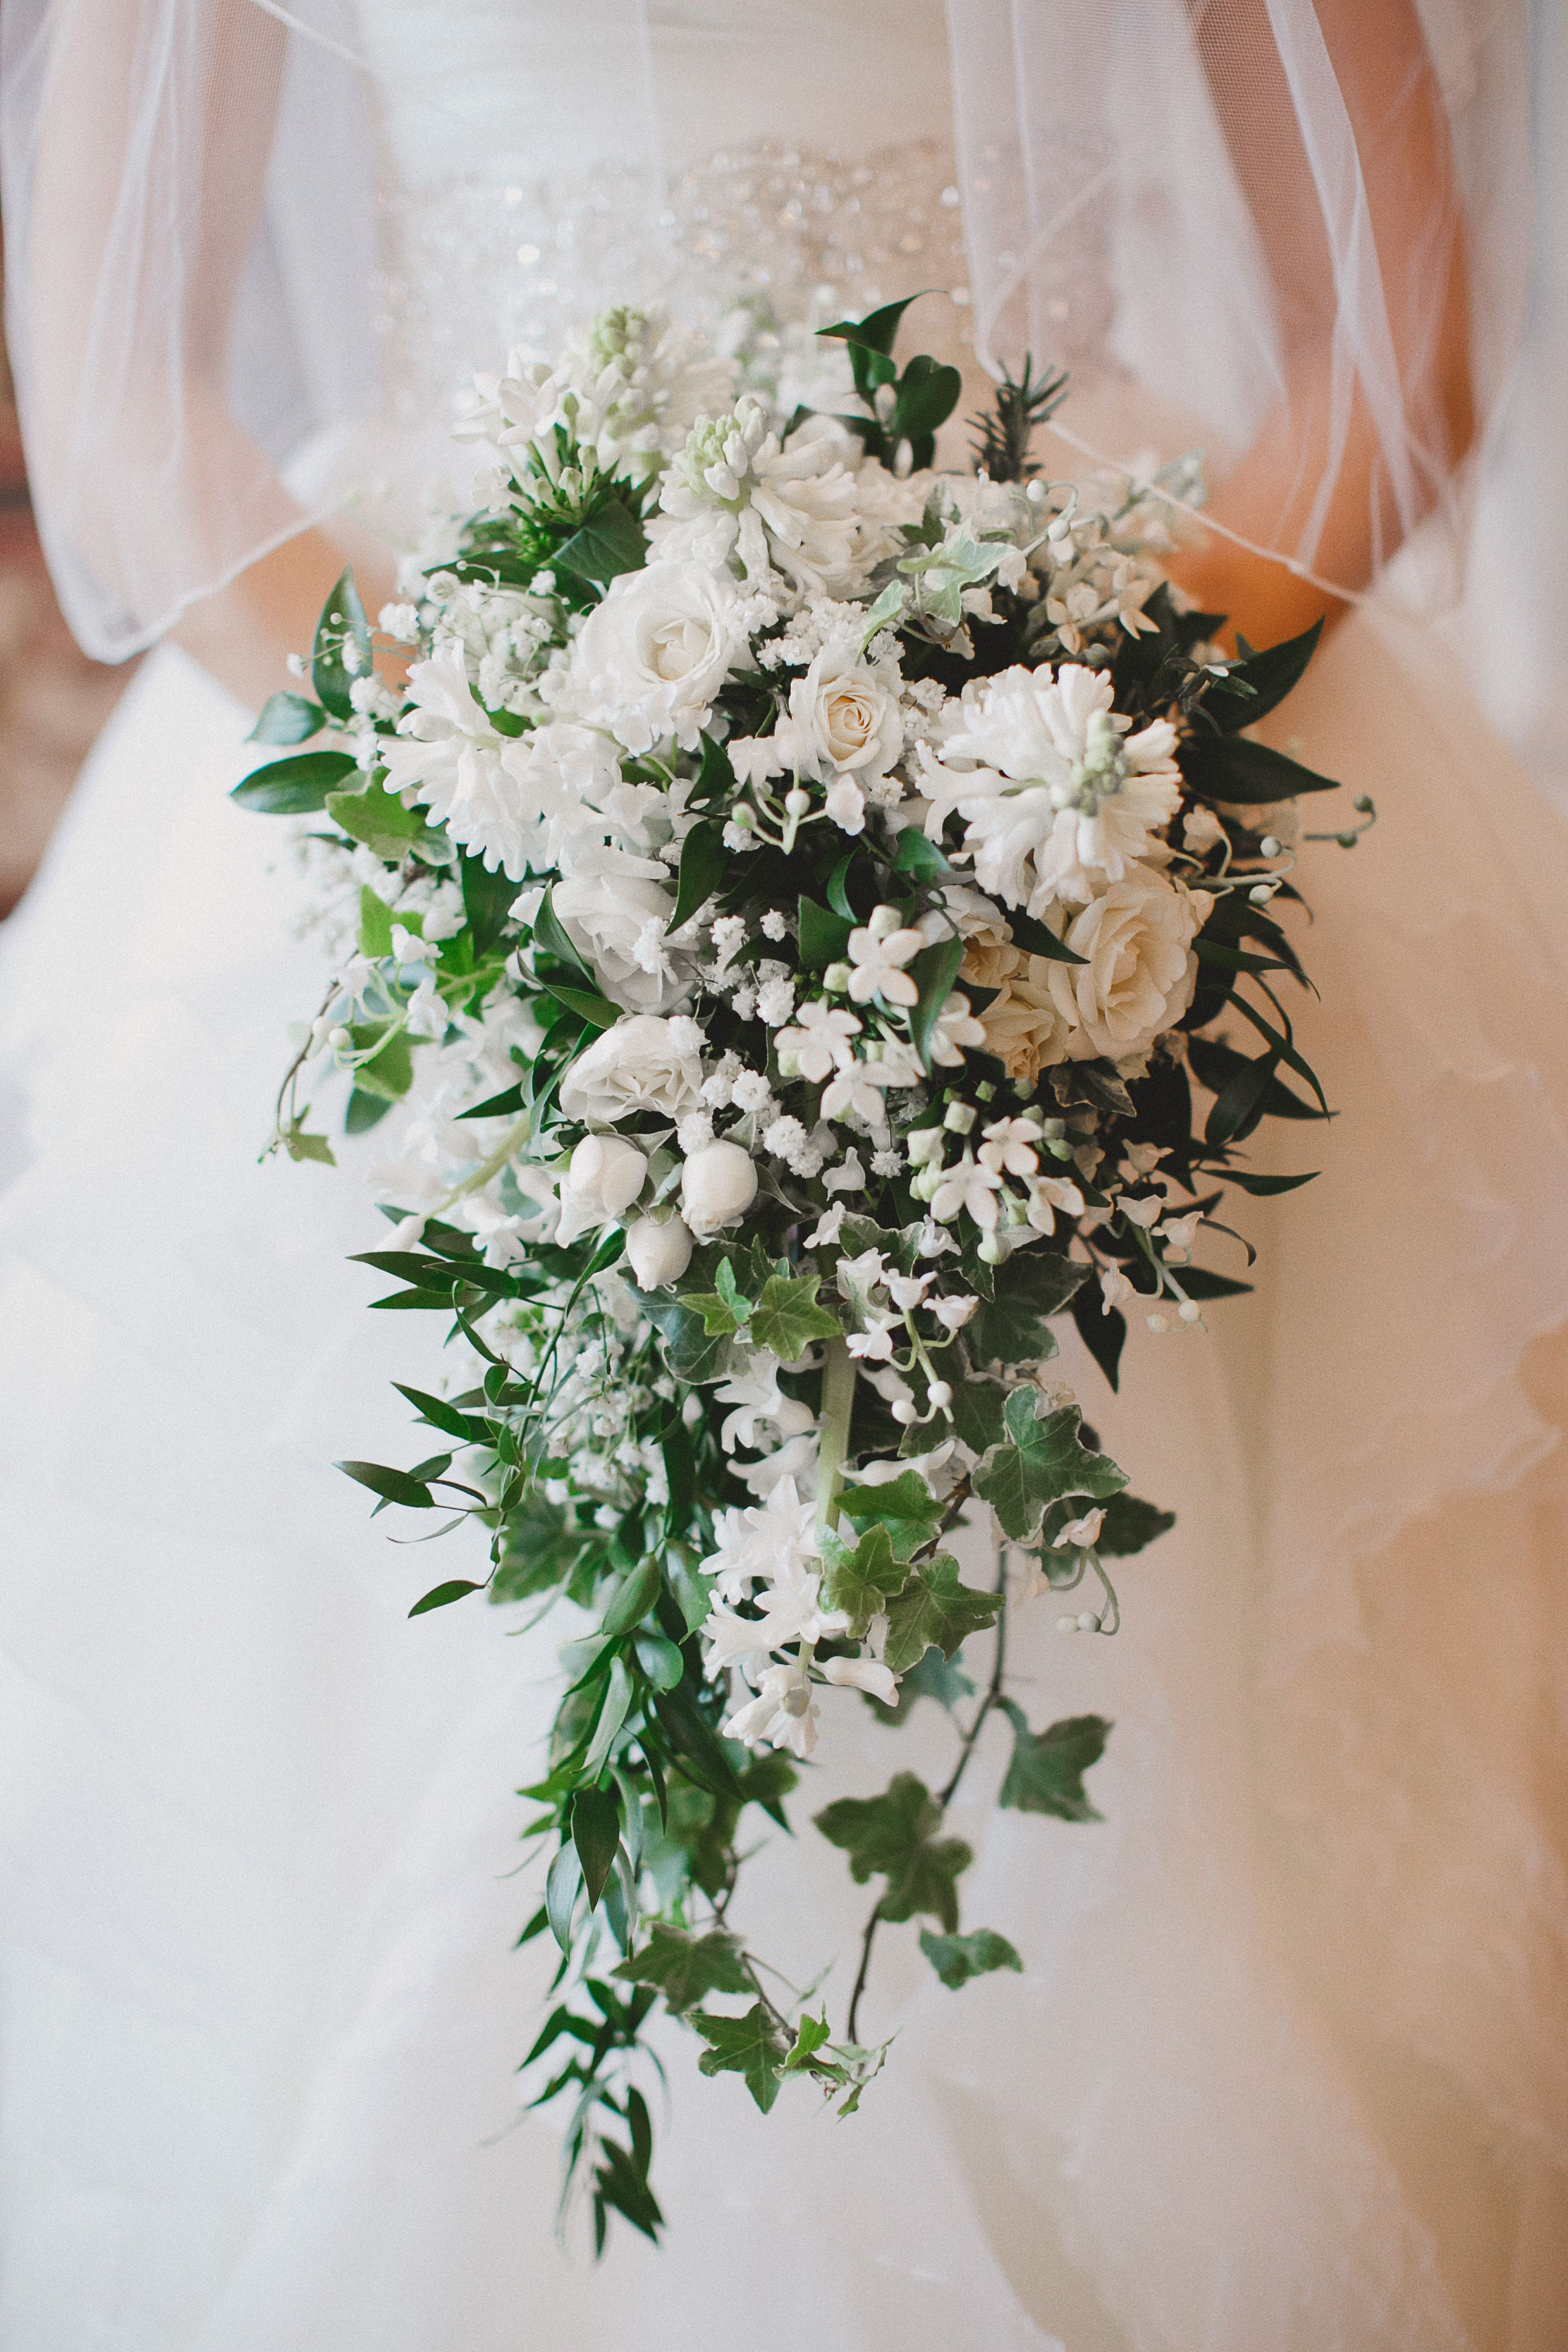 Cascading Bouquet Pictured Bouvardia Lilly Of The Valley Hyacinth Spray Rose Babys Breath Ivy Italian Ruscus By Fache Floral Designs